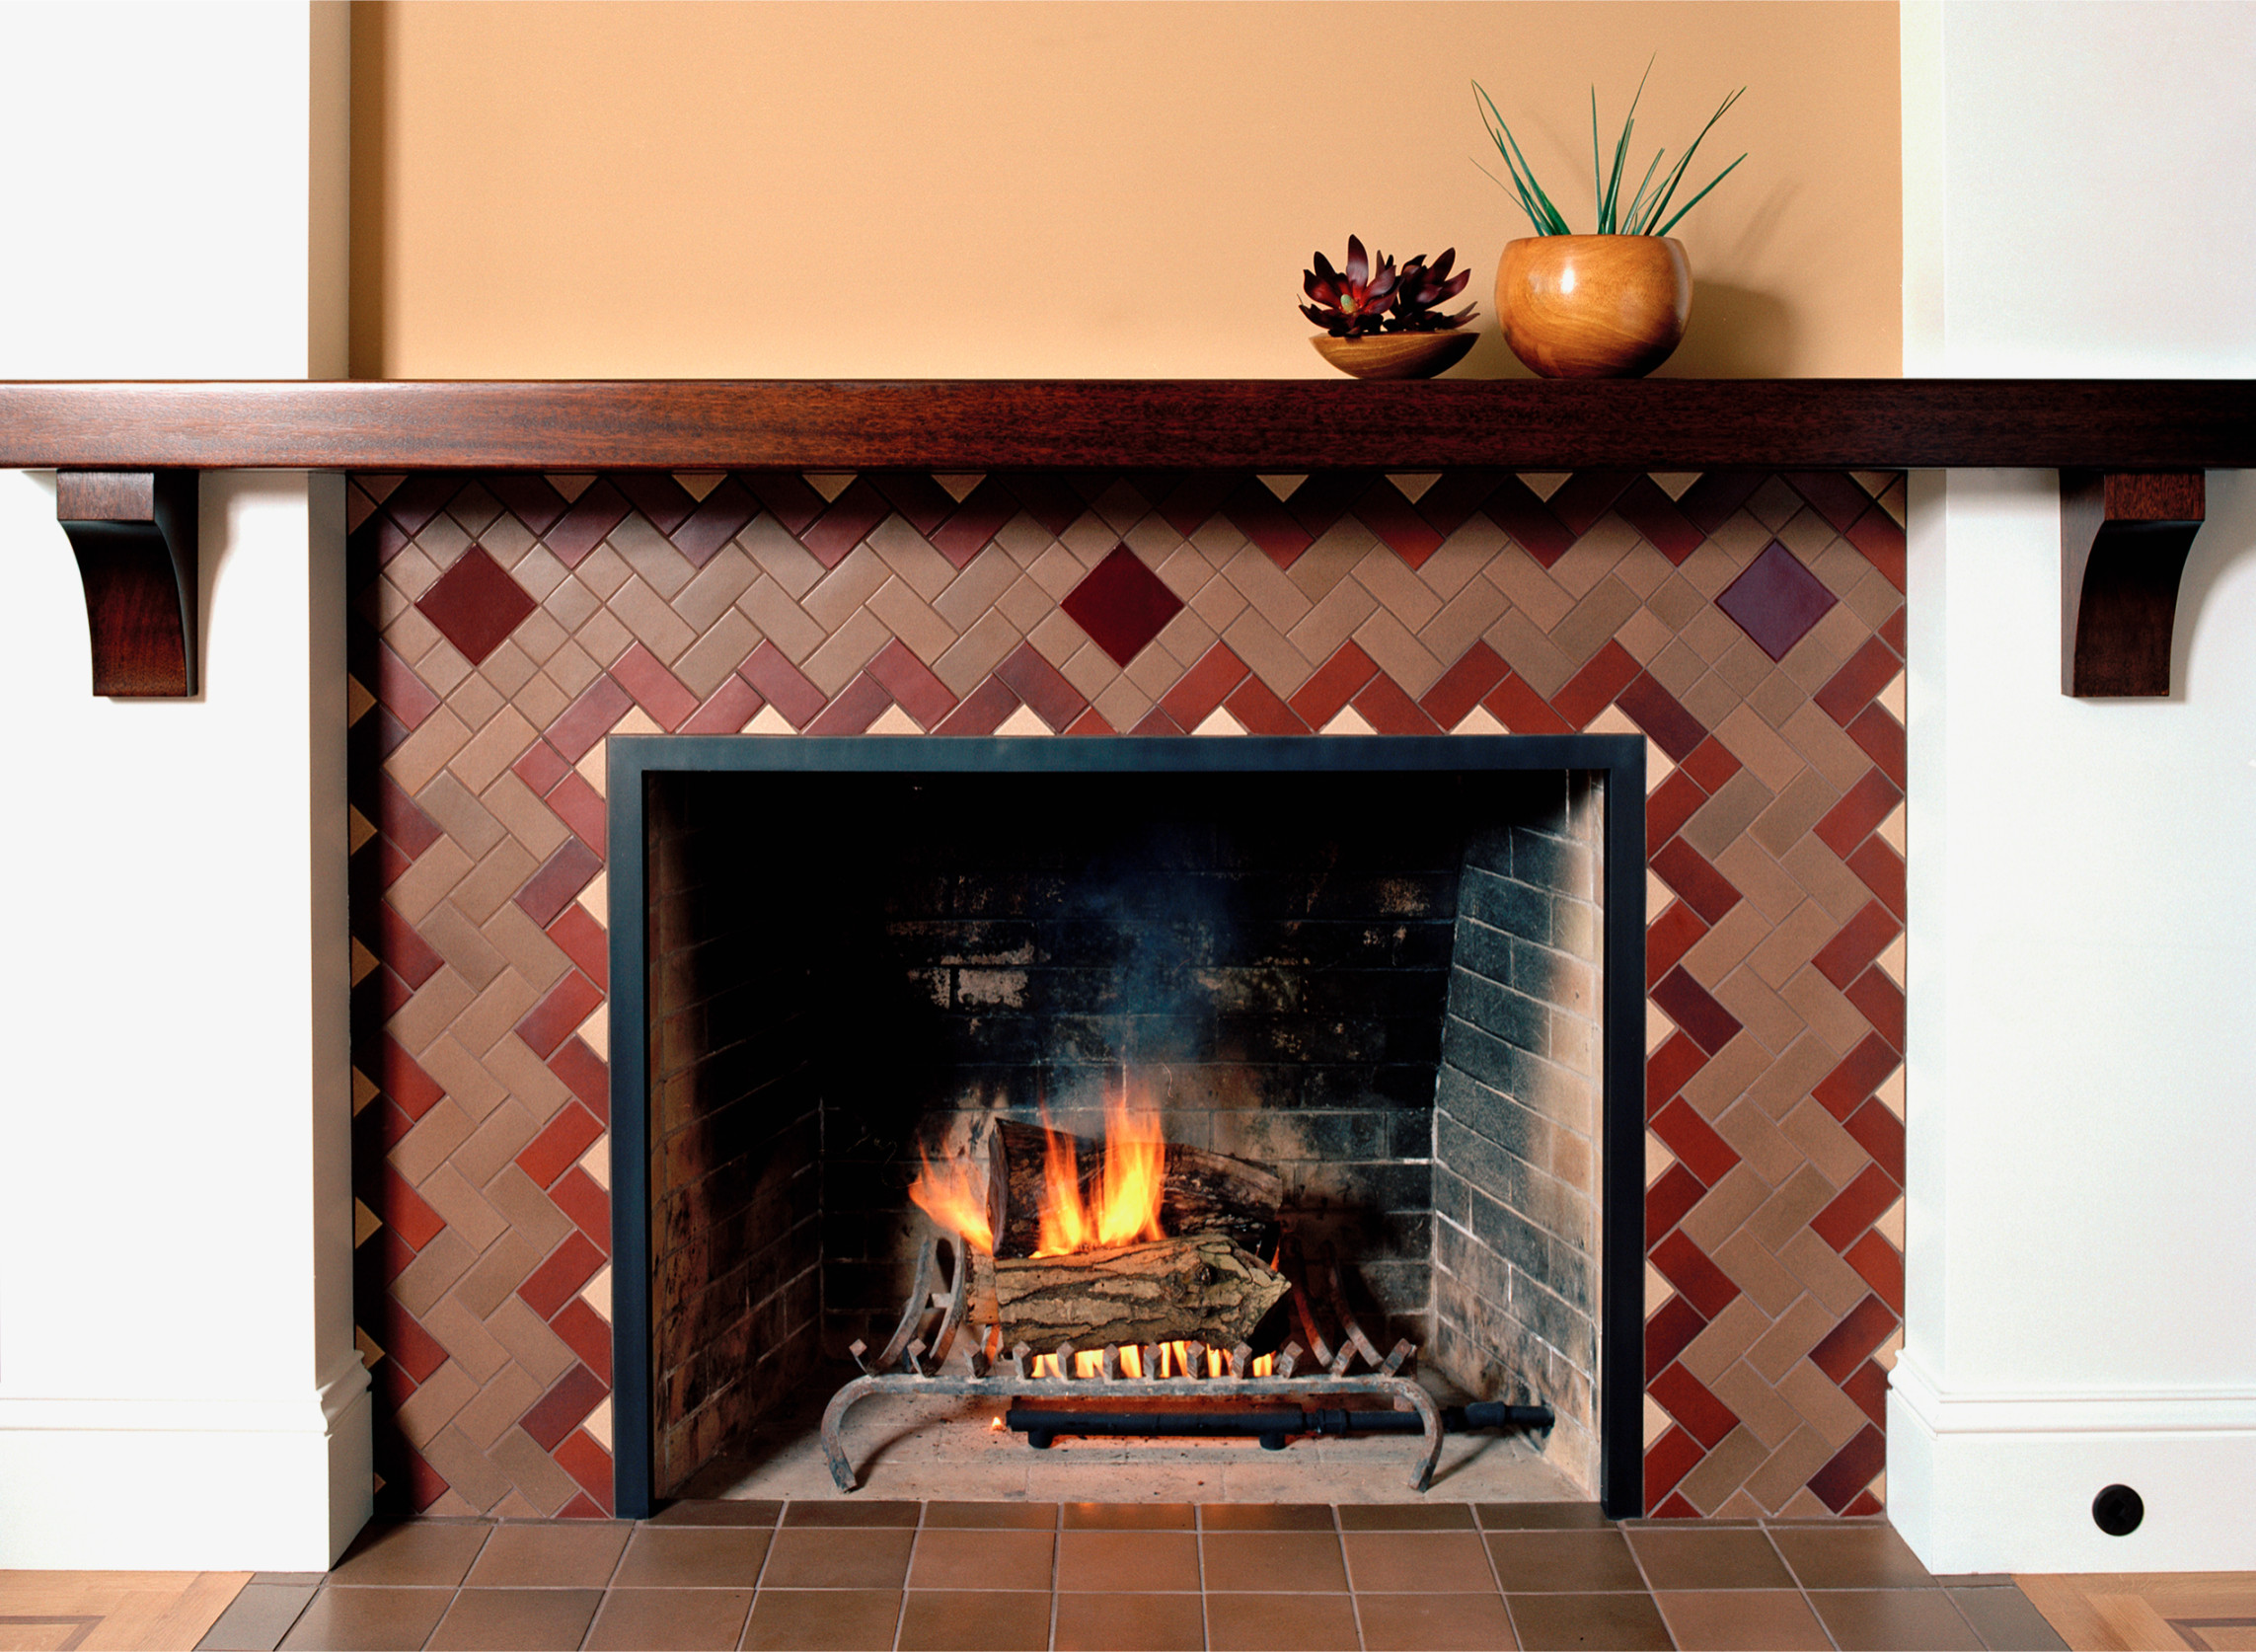 Tile design with beautiful mantel